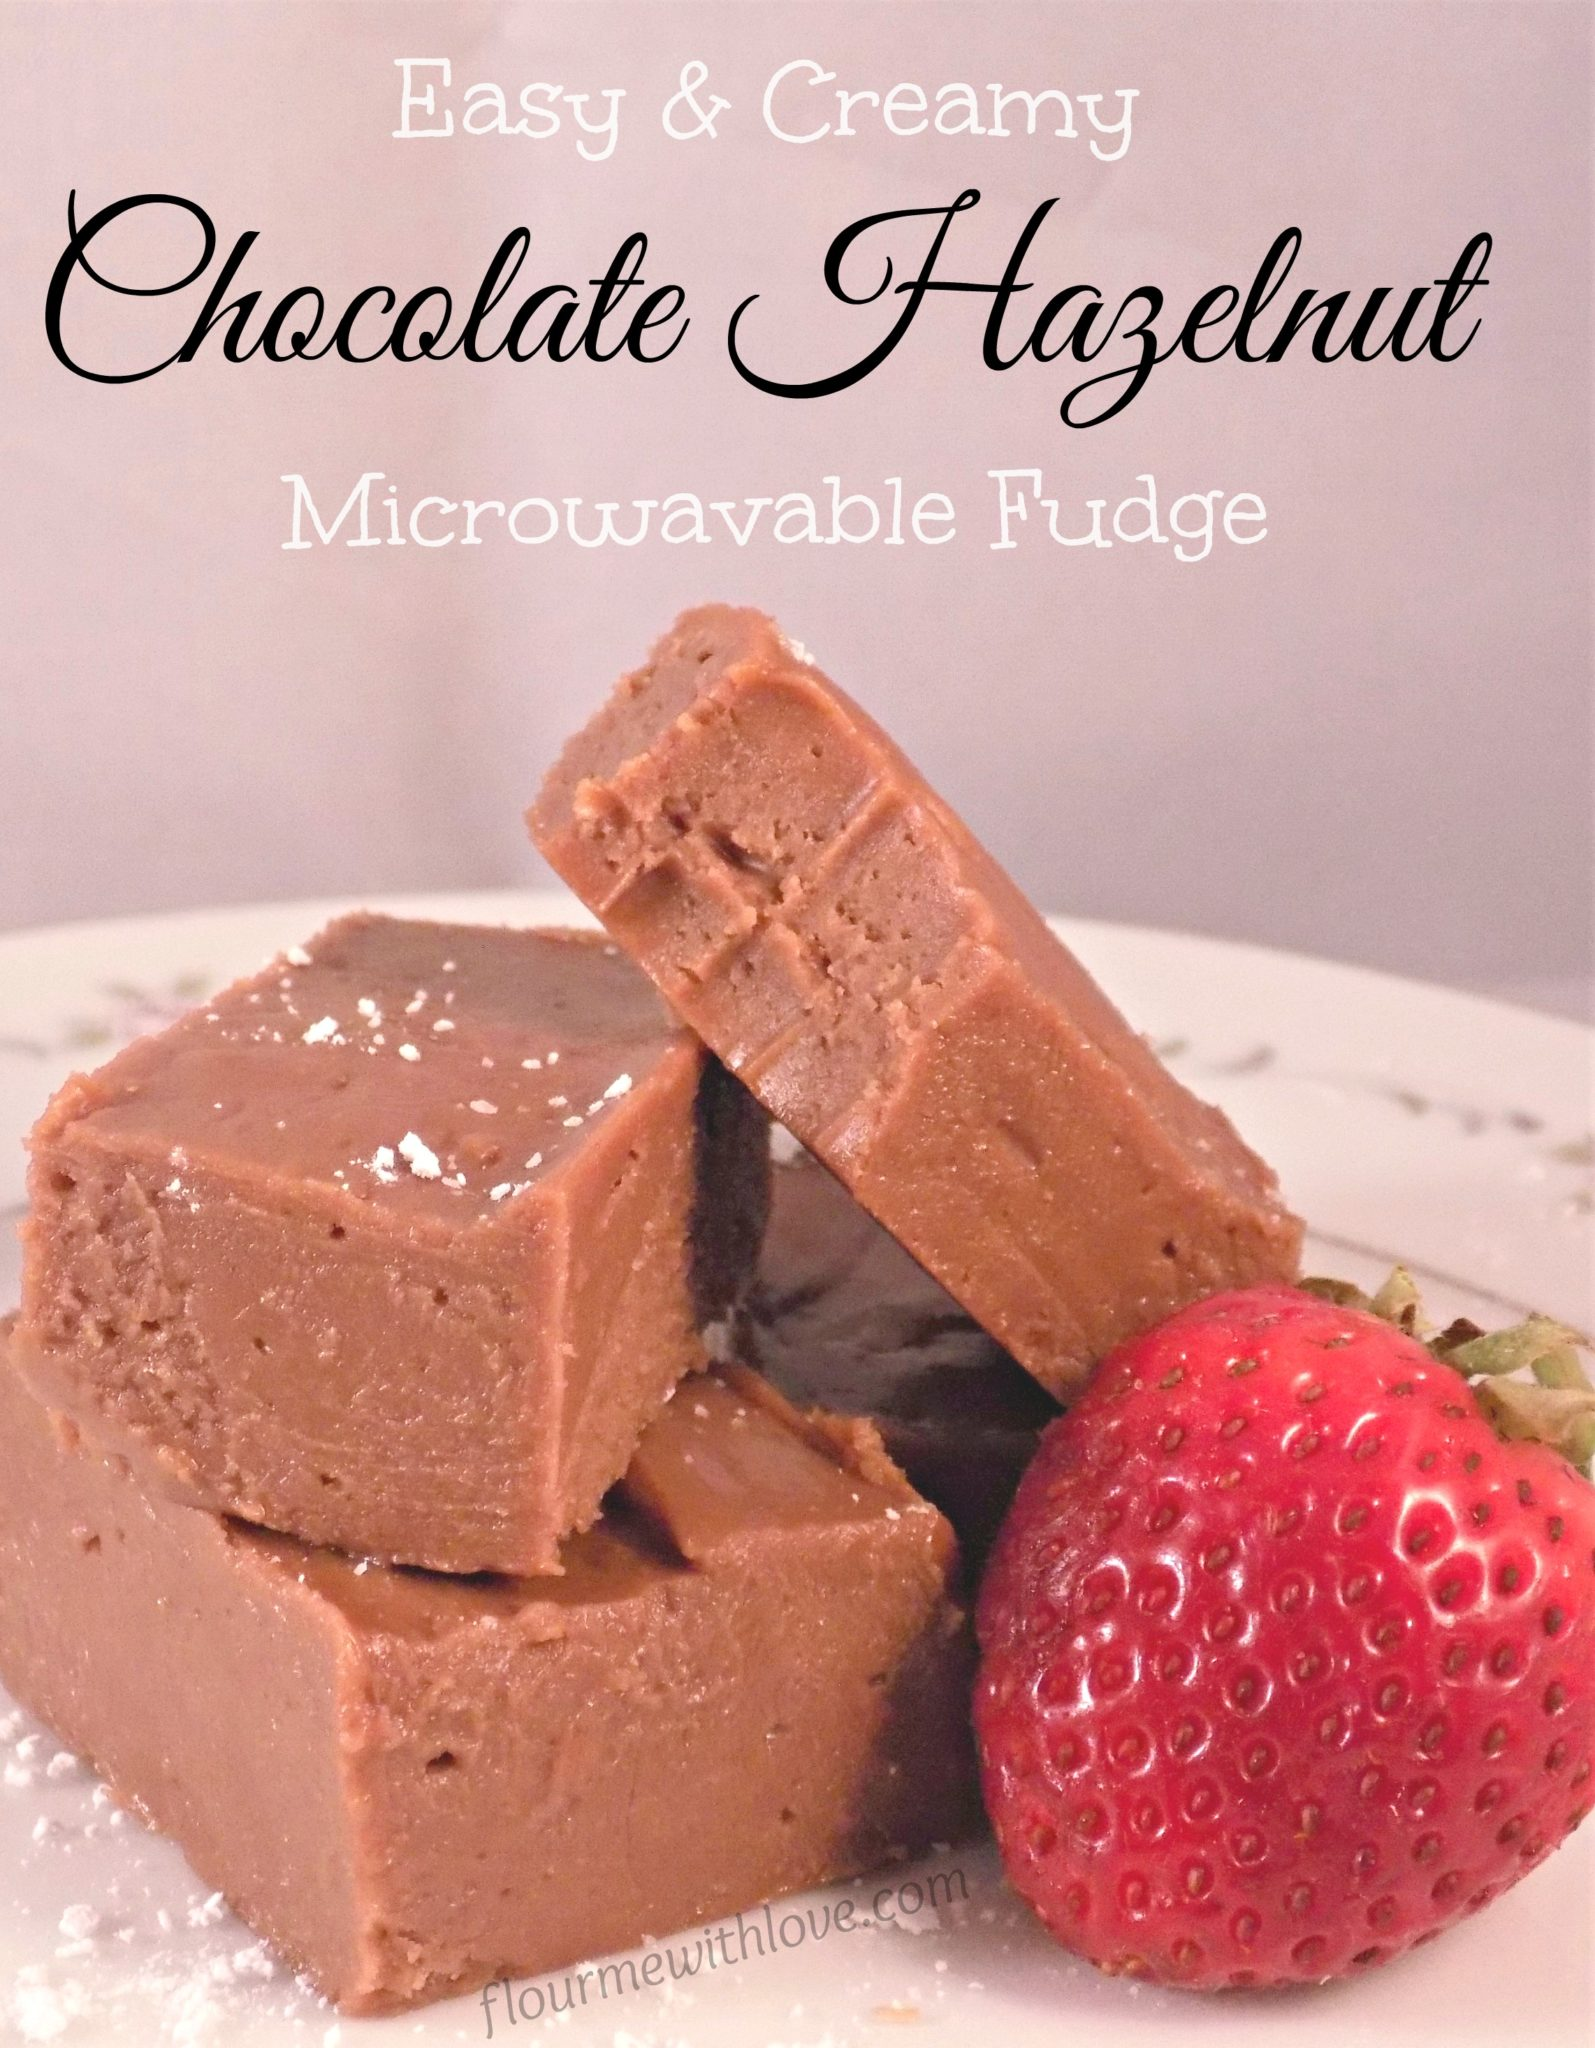 Easy Creamy Chocolate Hazelnut Fudge made in the microwave!